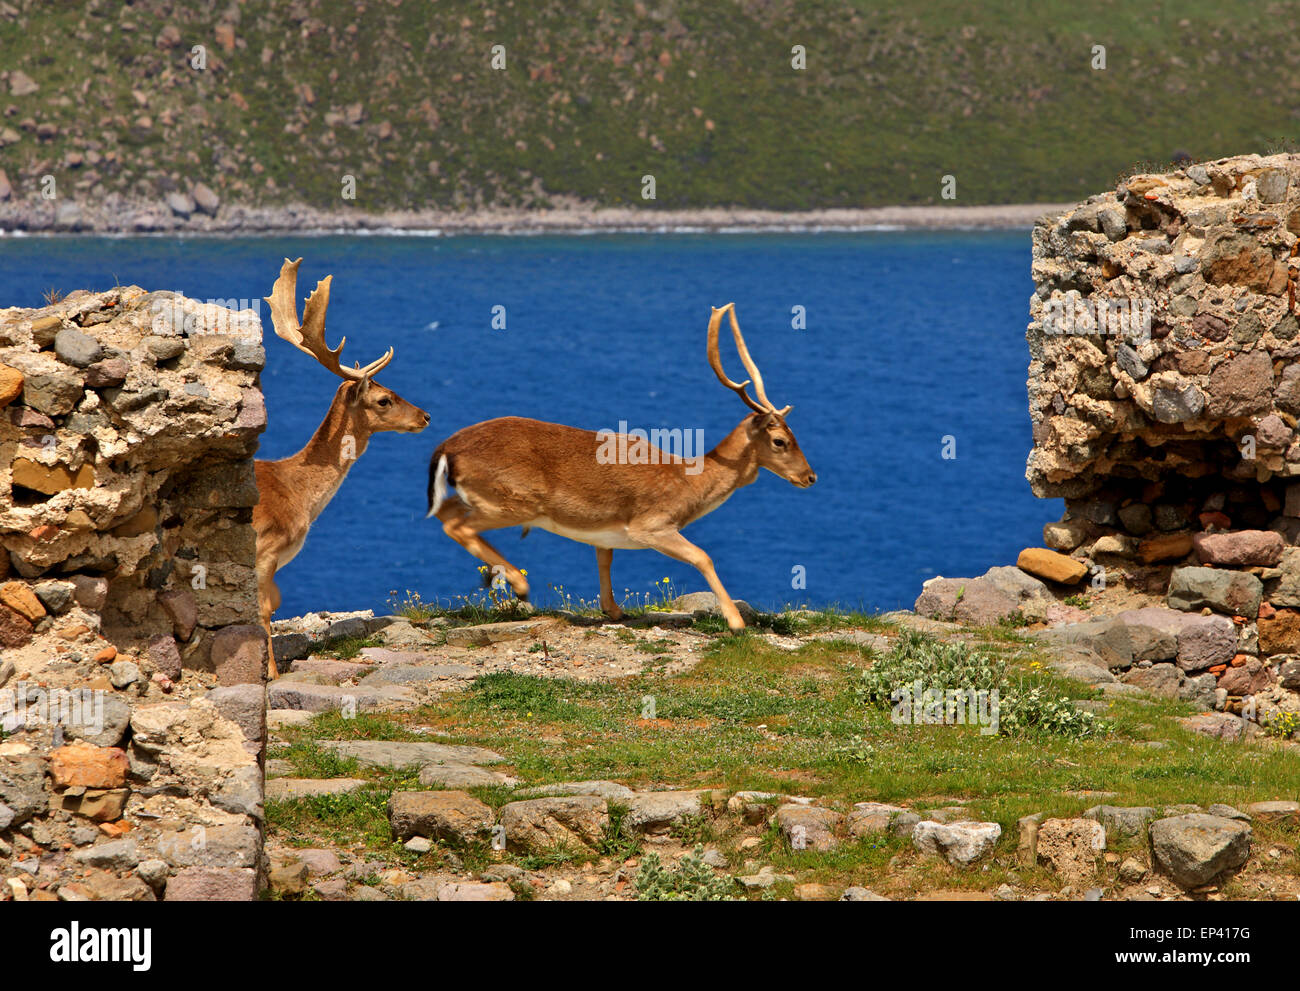 Deer in the castle of Myrina town, Lemnos (Limnos) island, North Aegean, Greece - Stock Image